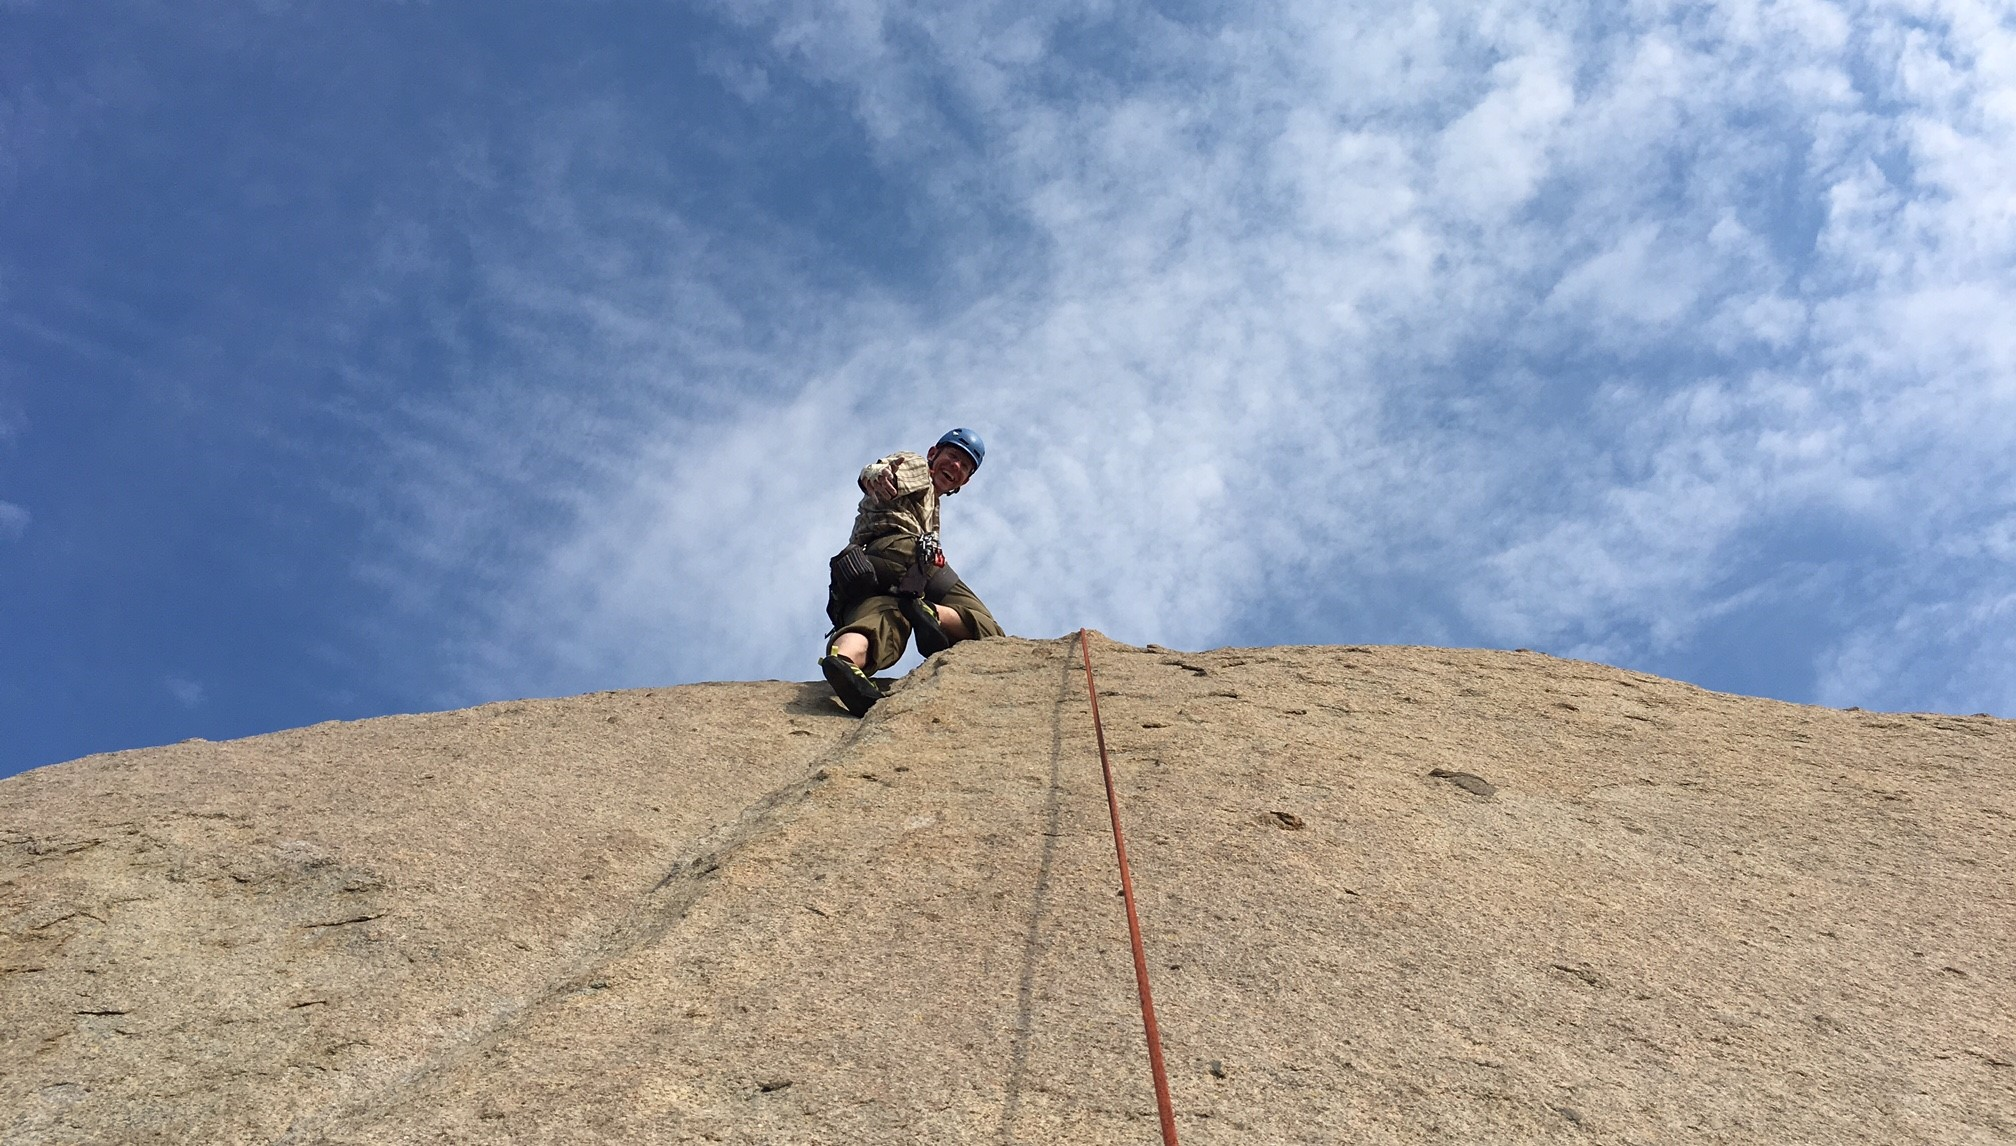 Mt. Woodson Rock Climbing Elsa's Crack, southern california